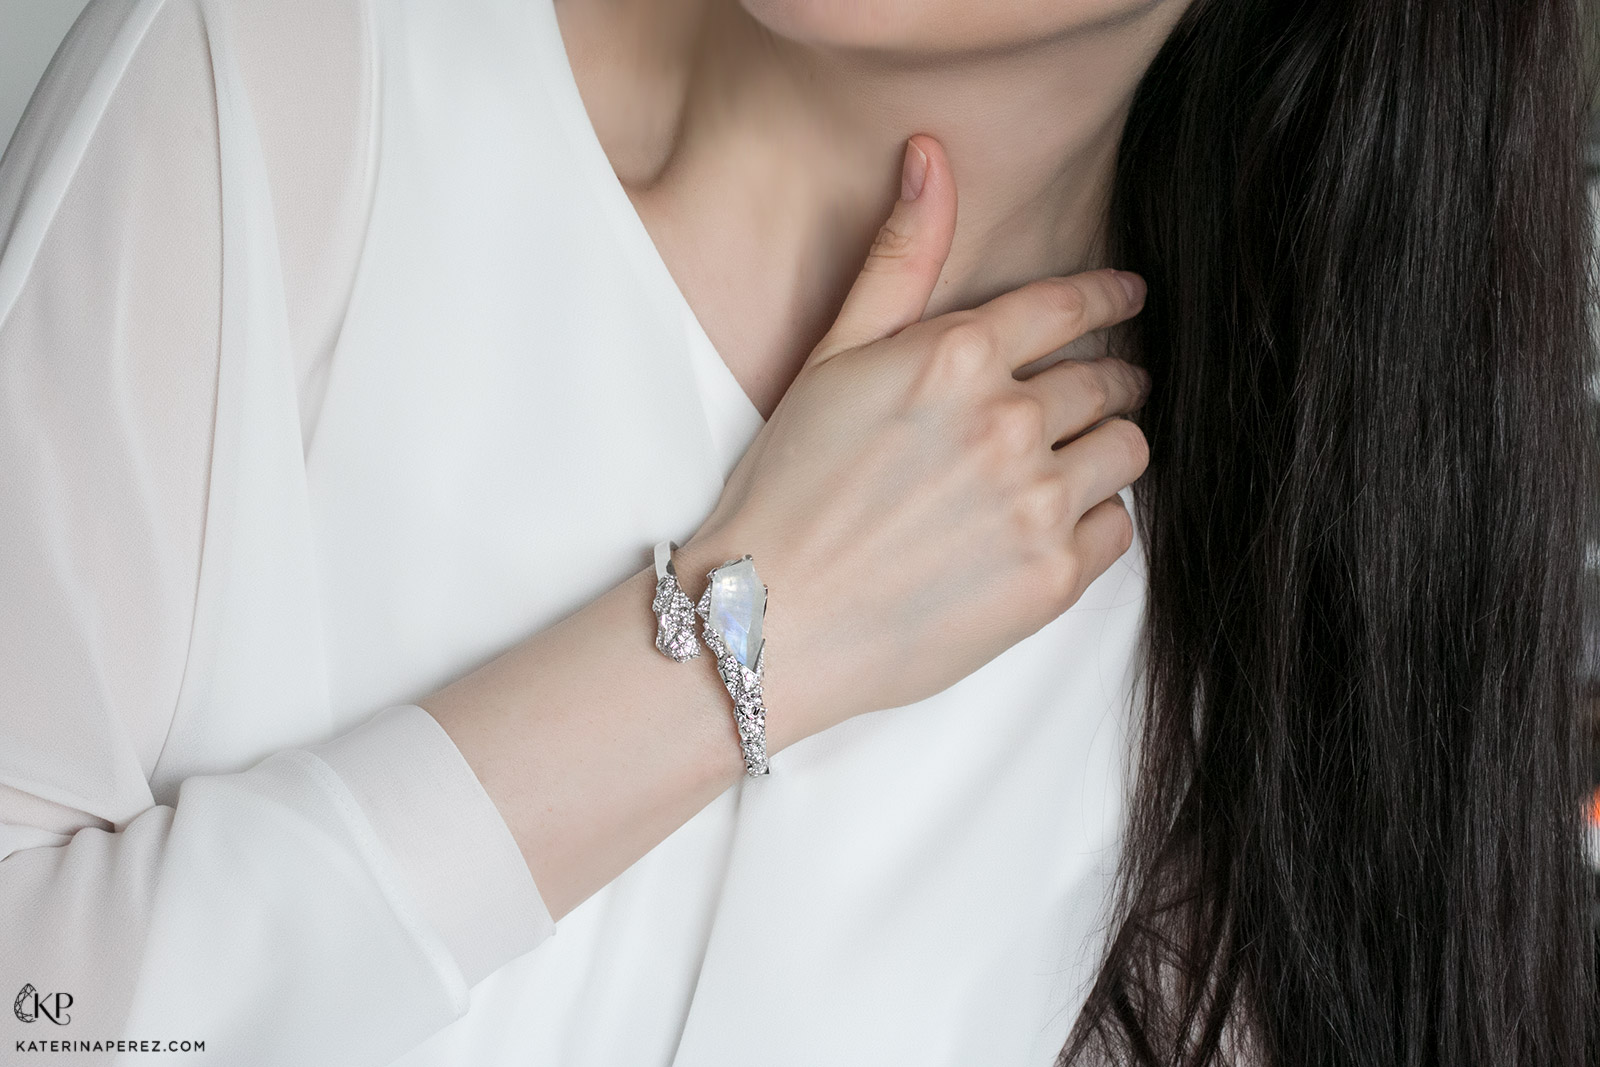 Neha Dani 'Pasterze' bangle from 'Glacier' collection in moonstone and diamonds